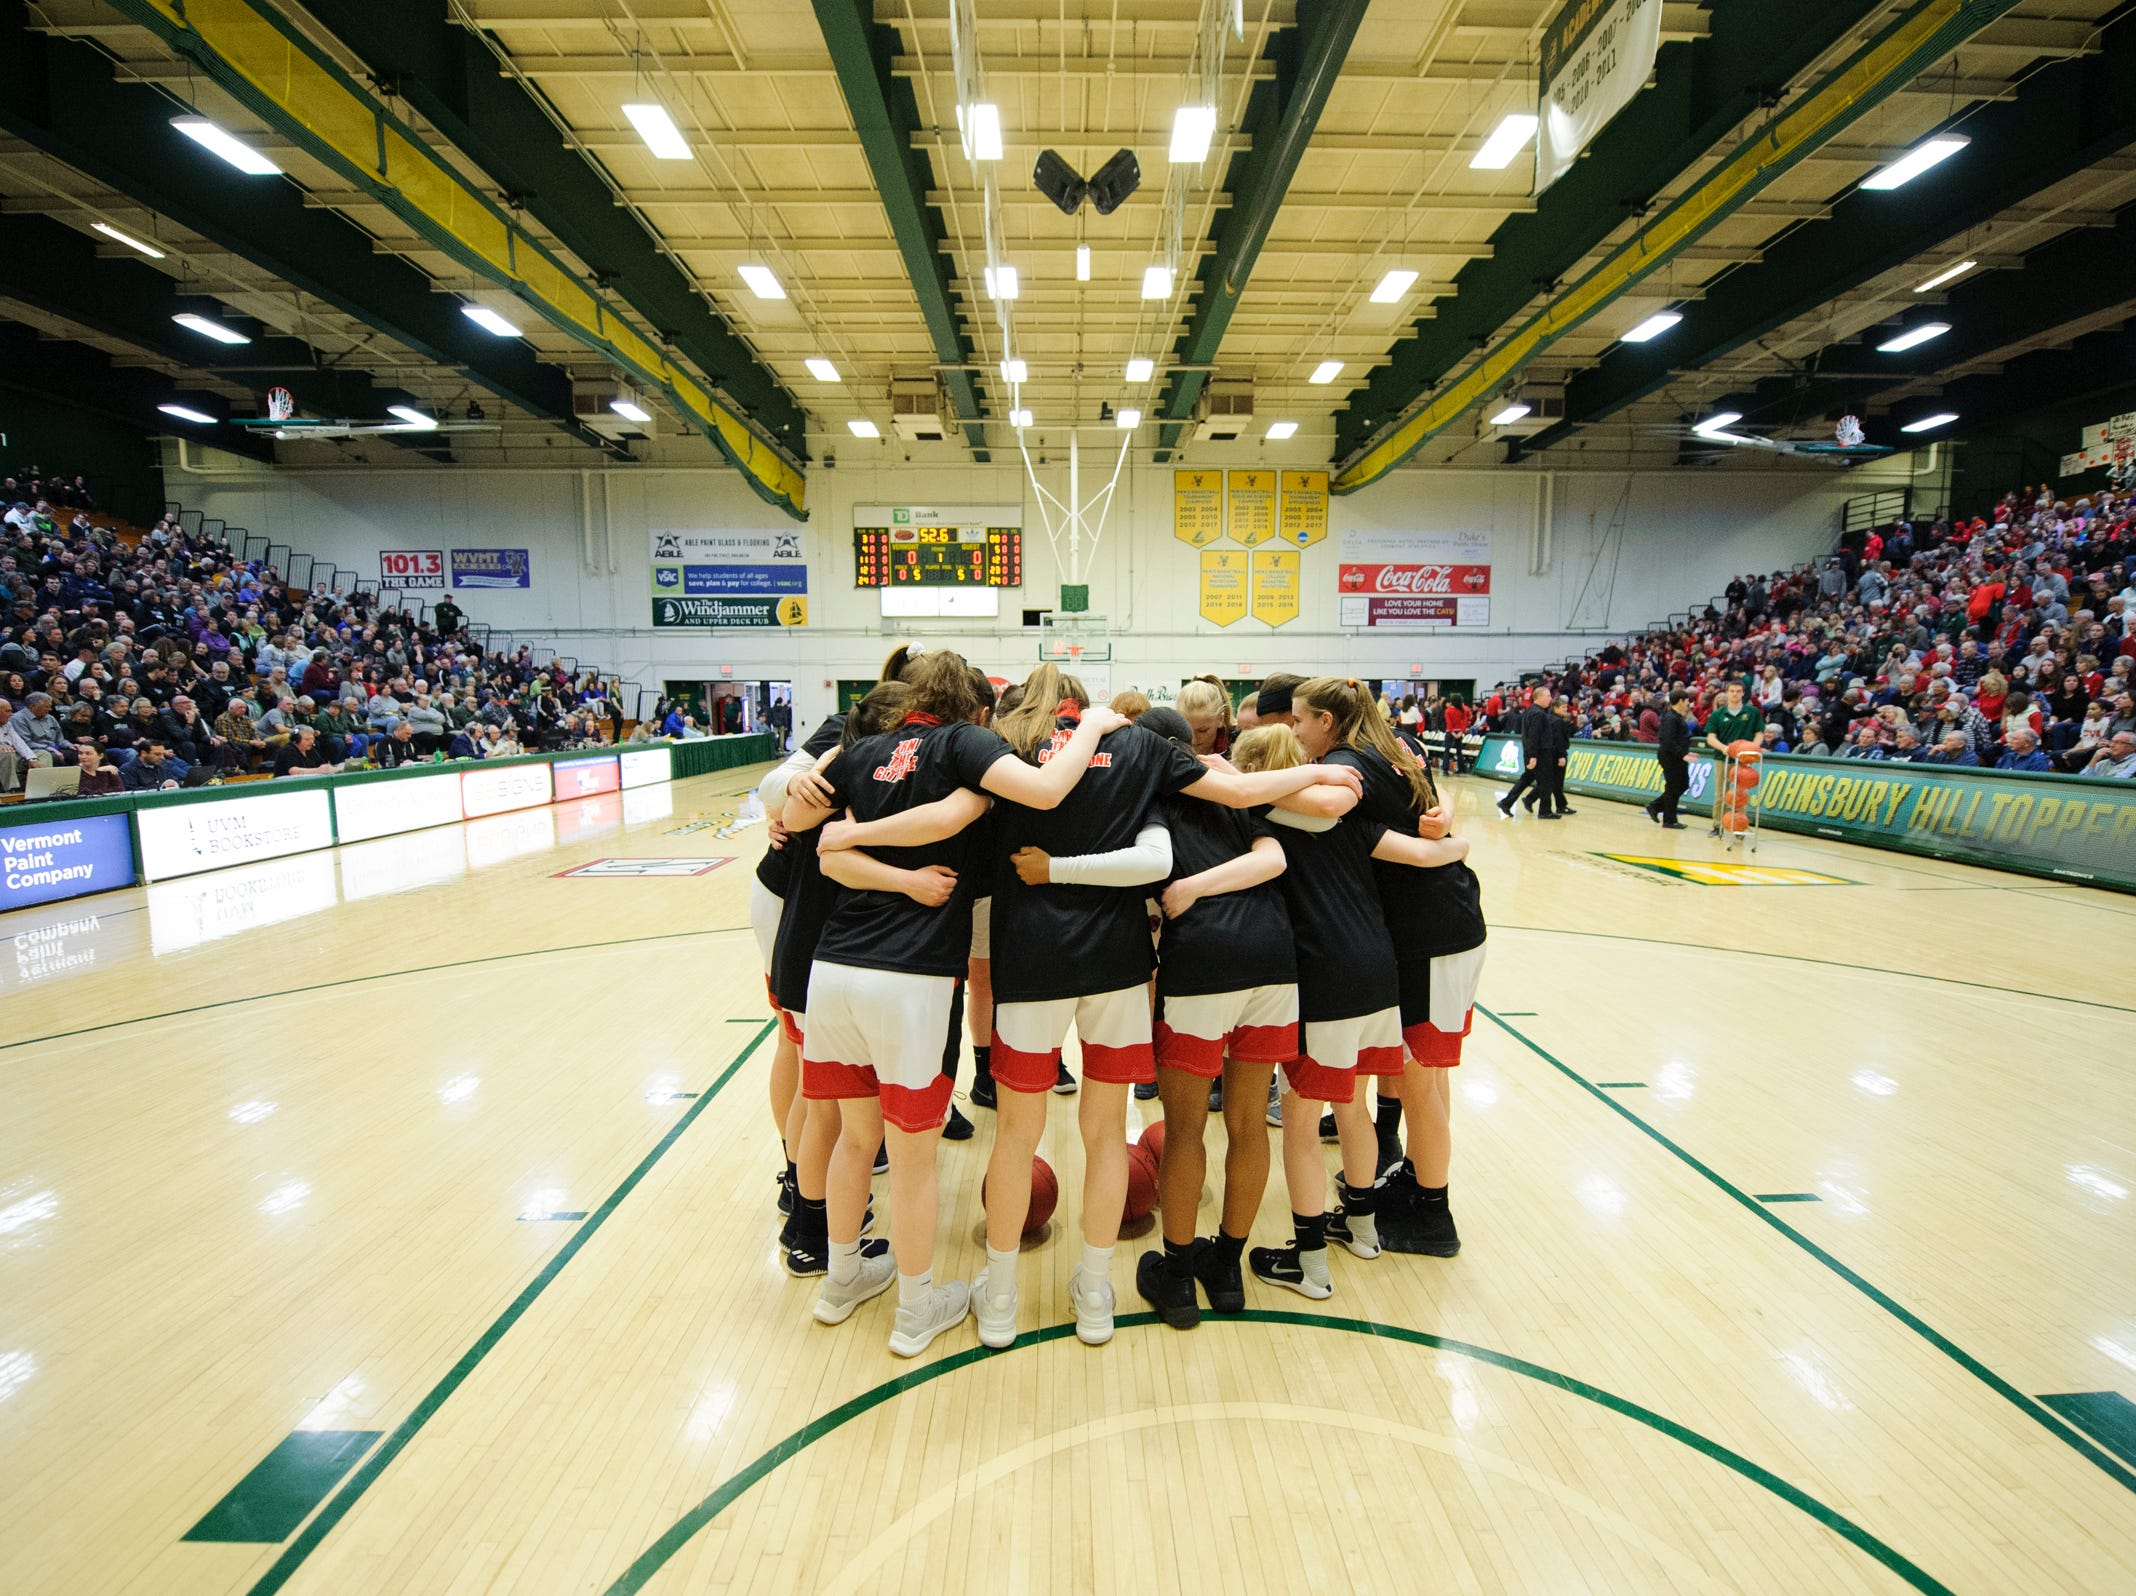 CVU huddles together during the division I girls basketball championship basketball game between the St. Johnsbury Hilltoppers and the Champlain Valley Union Redhawks at Patrick Gym on Sunday afternoon March 10, 2019 in Burlington, Vermont.